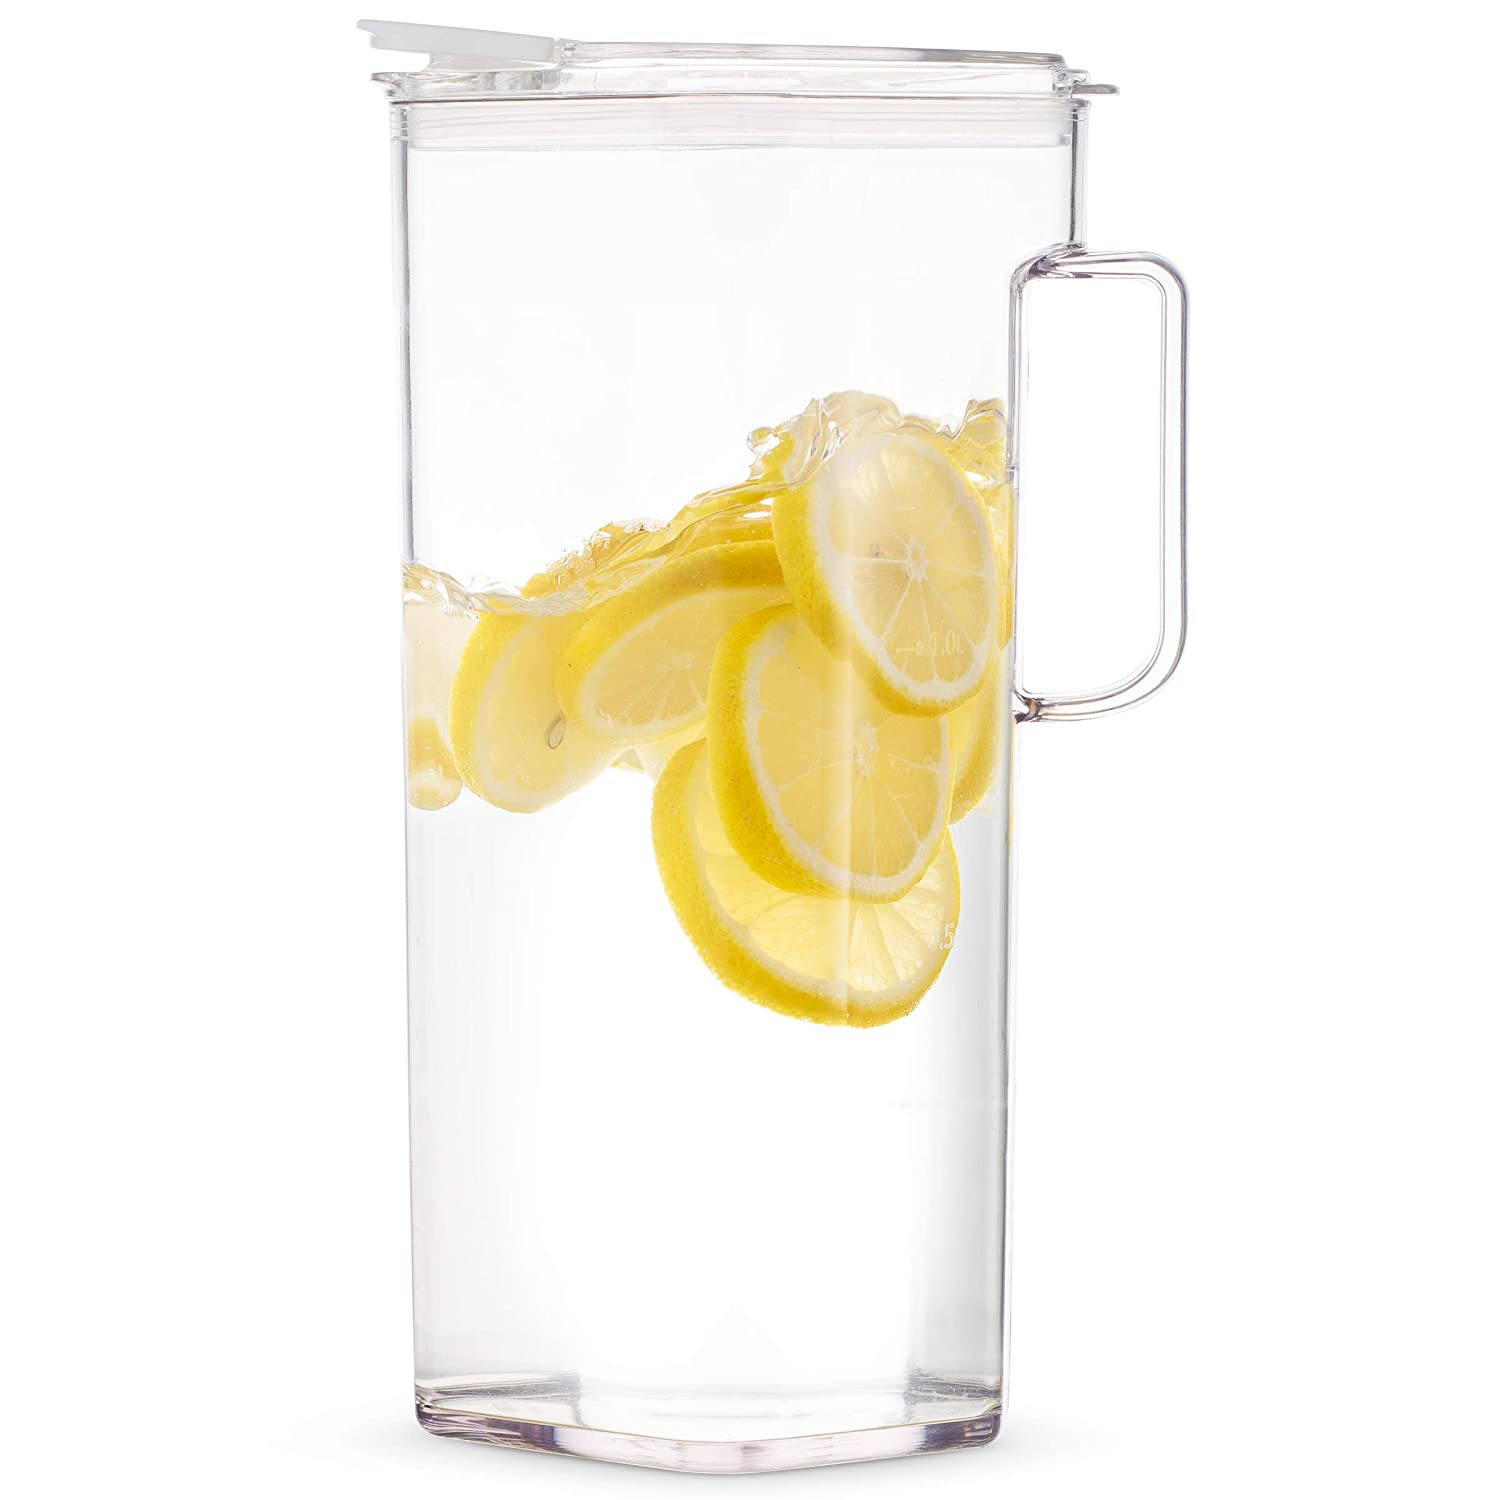 Komax Clear Large Tritan Pitcher with Lid | 77 Oz - 2.4 Quart (Full Capacity Jug) | Great Carafe for Water, Juice, Ice Tea, Lemonade, Sangria & Milk | Airtight, BPA Free, Square Shape Water Pitcher